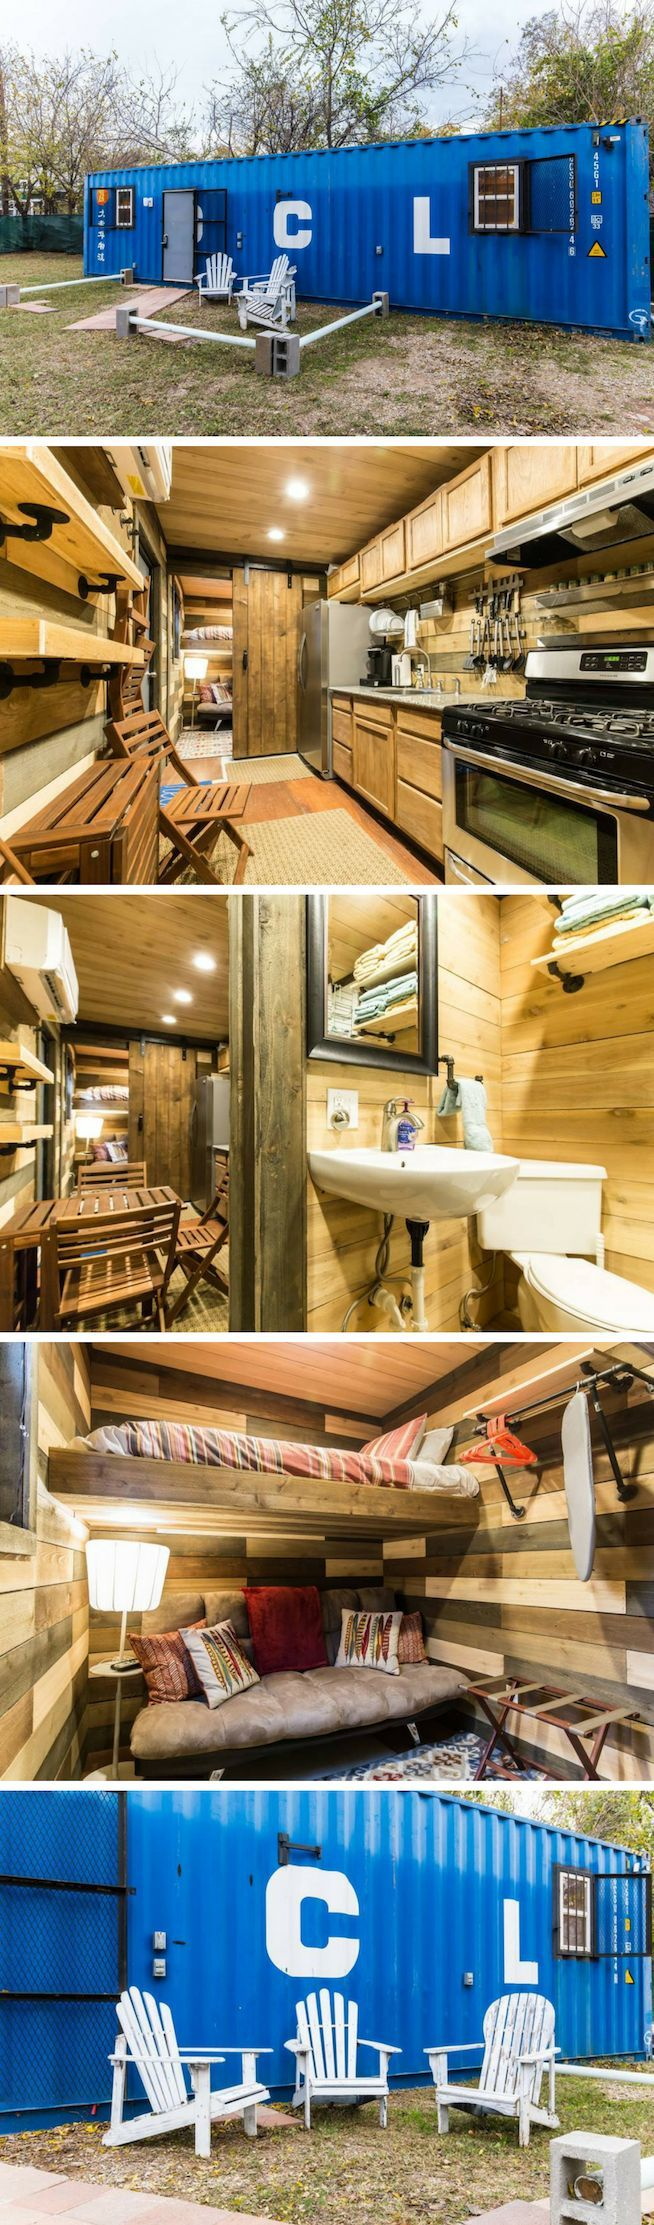 BLUE STEEL TINY CONTAINER HOME